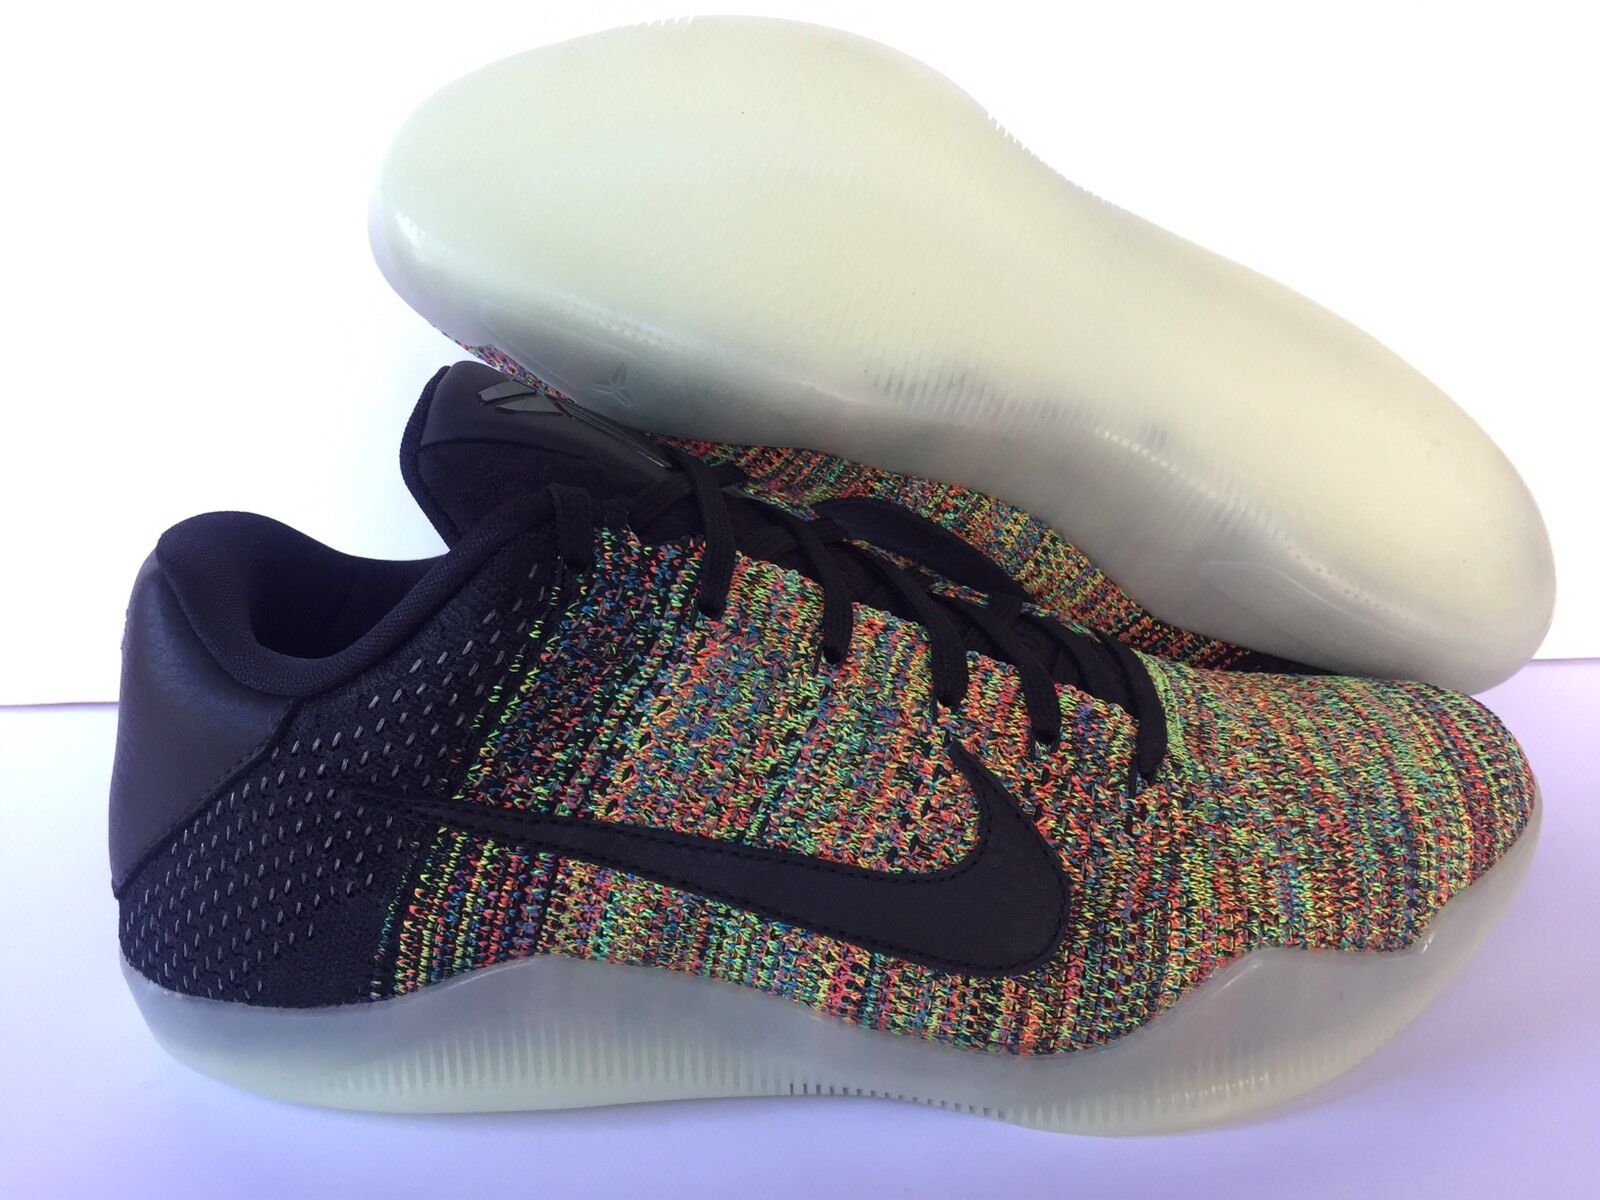 NIKEiD KOBE ELITE LOW BLACK/MULTICOLOR [ 903710-993 ] US MEN SZ 10